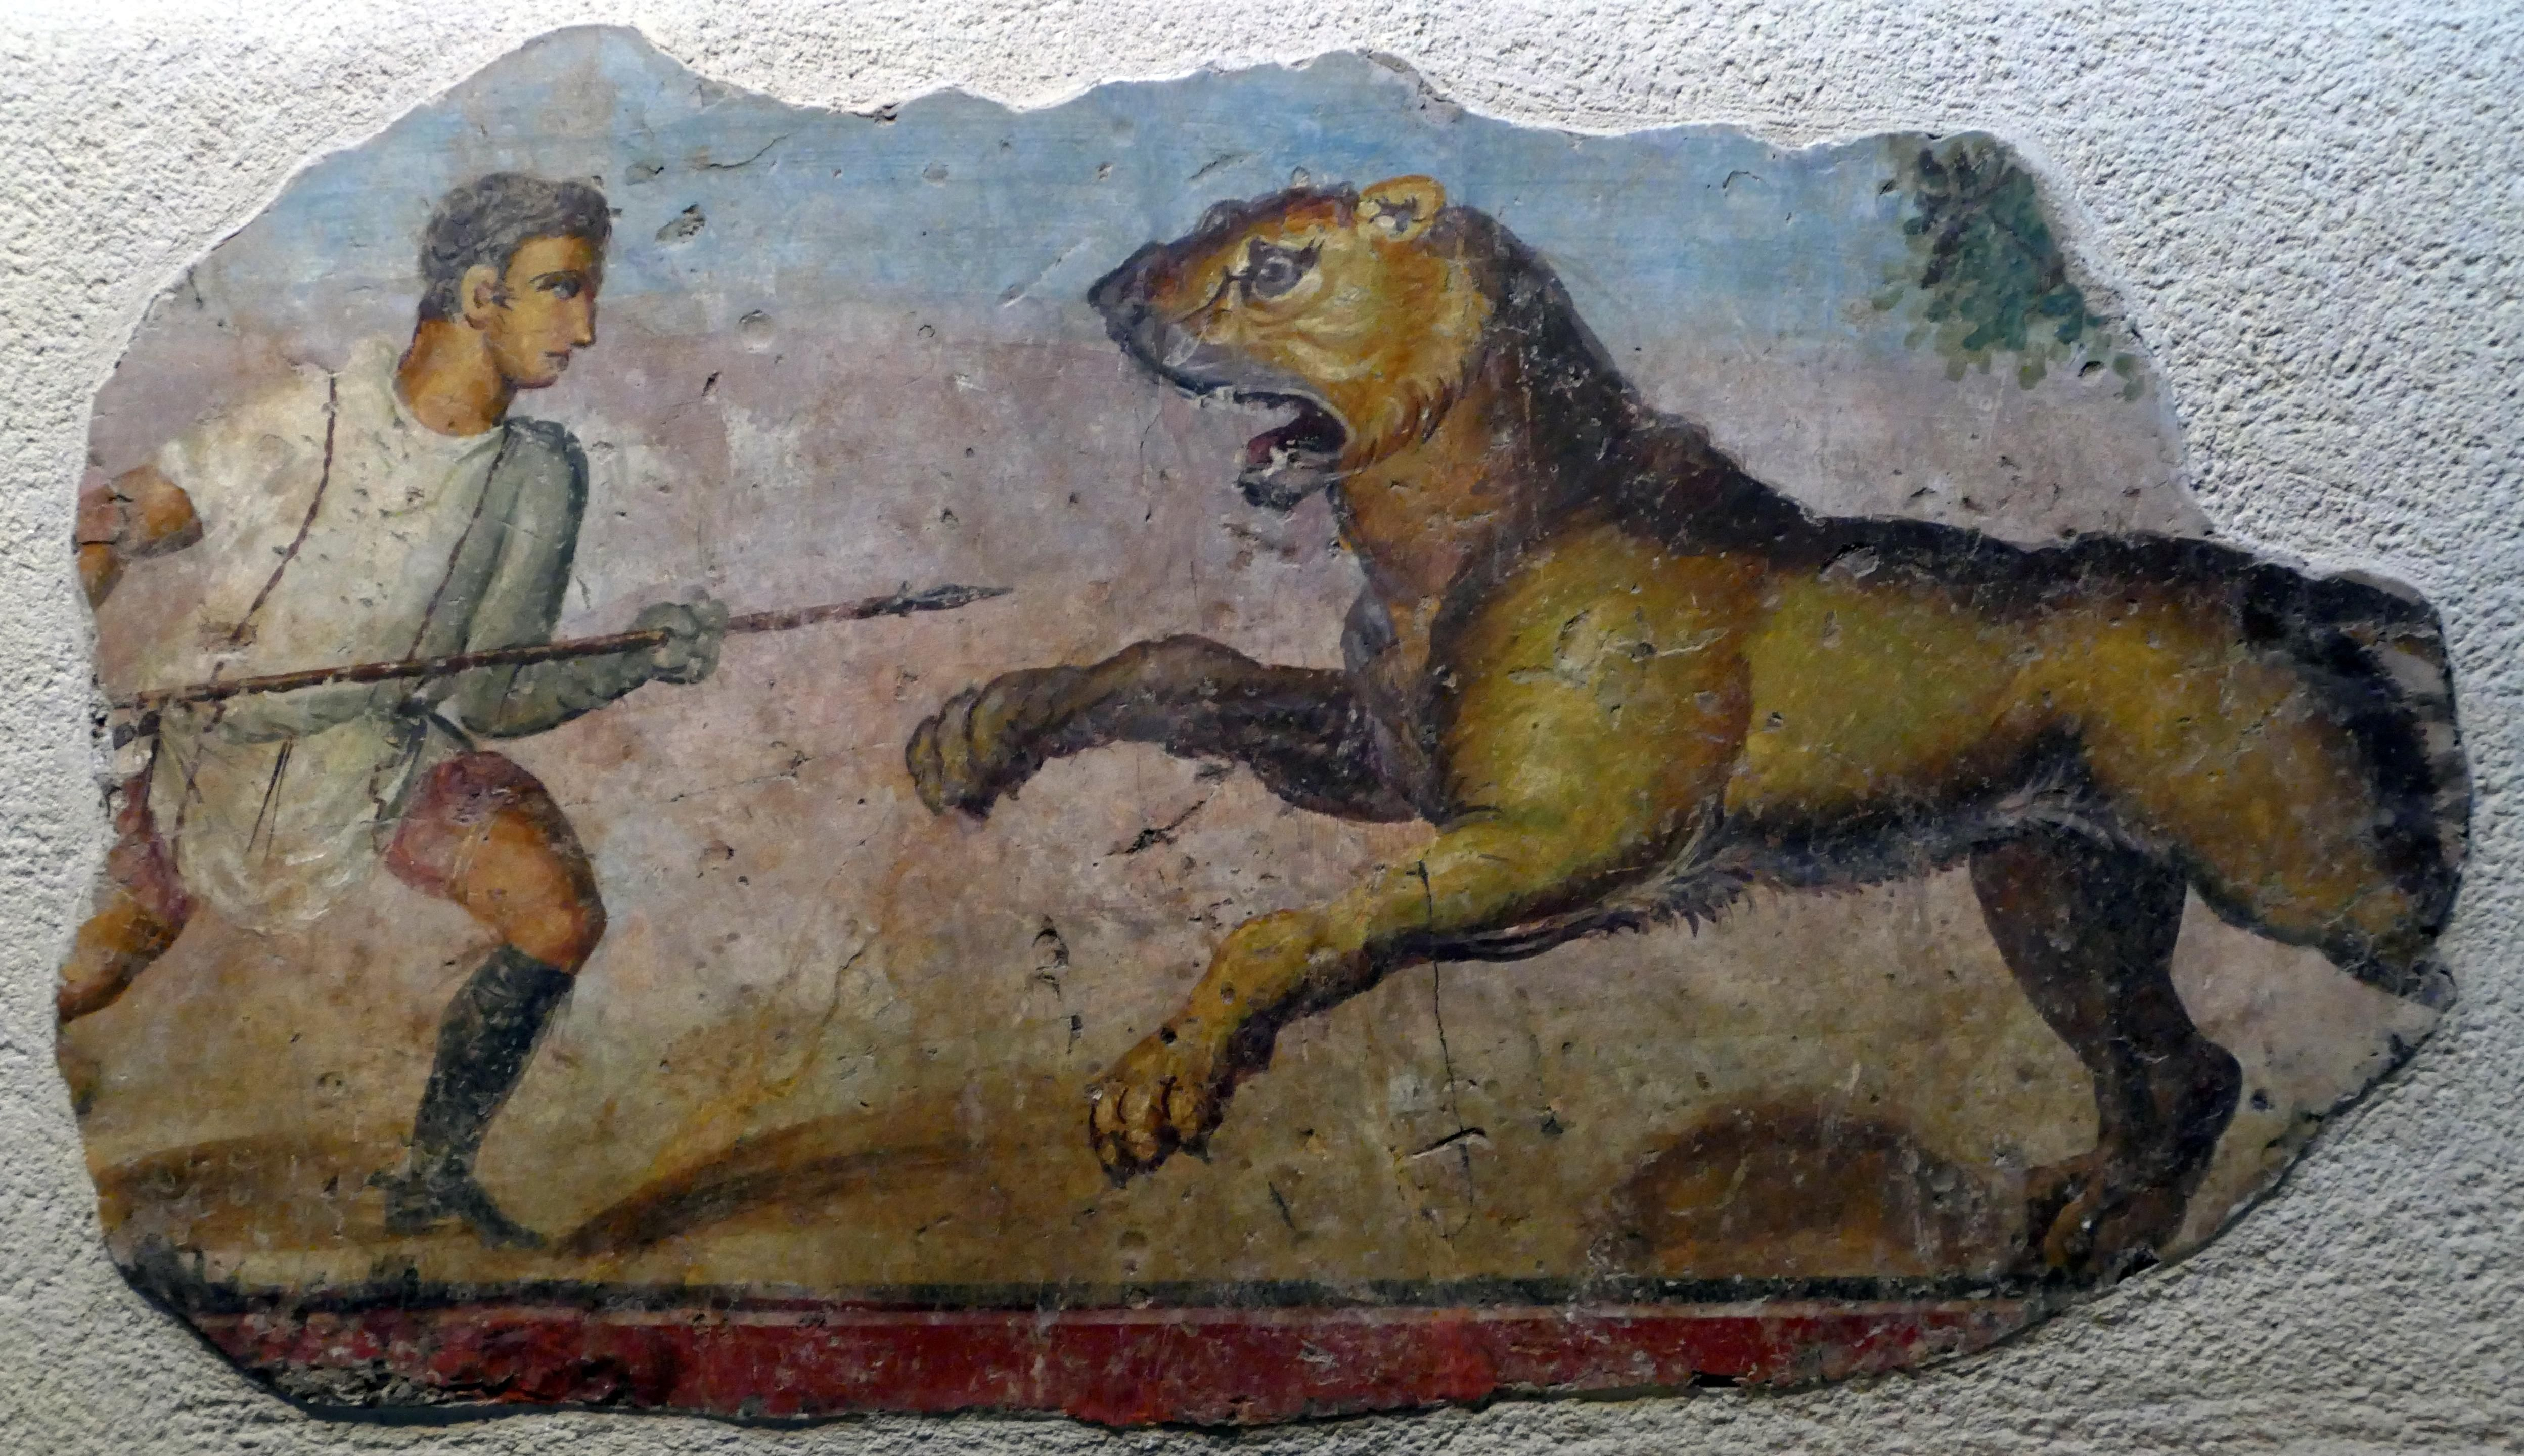 mural of a venator or bestiarius fighting a lion which decorated the balustrade of the amphitheatre in the Roman city of Emerita Augusta (modern Mérida Spain). 103cm x 64cm. AD 76-100. National Museum of Roman Art (Mérida Spain). [OC] [4992x2880]